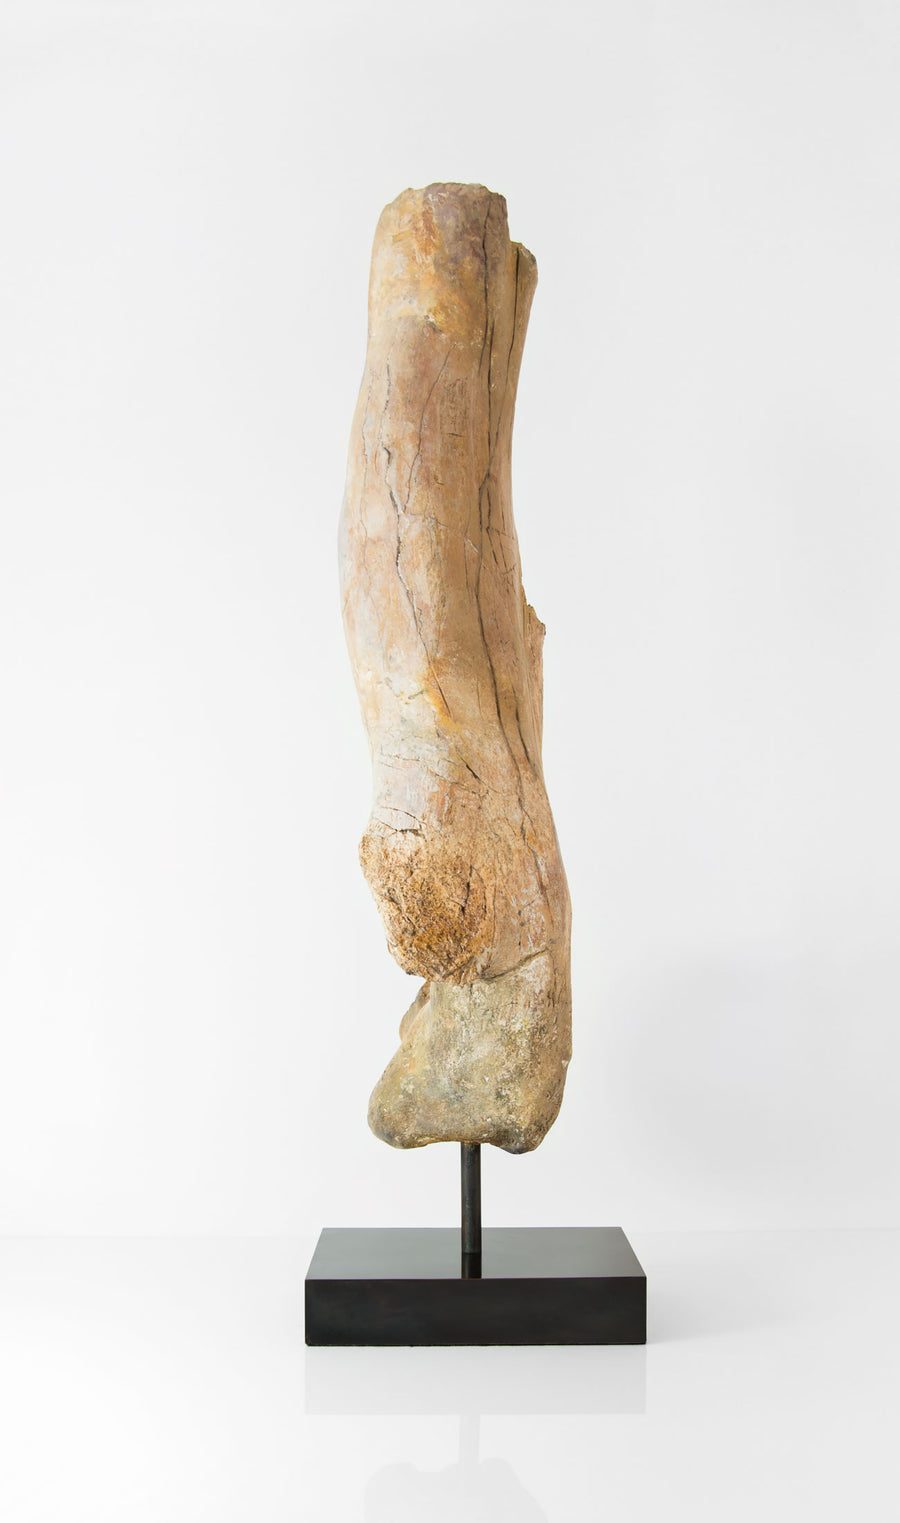 Theropod Dinosaur Femur on a bronze stand measuring 685mm